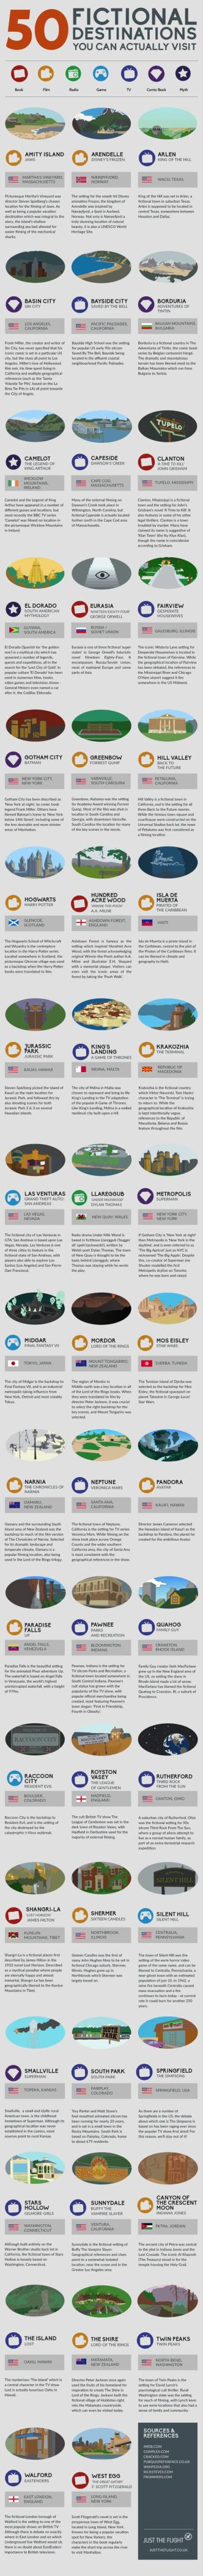 50 fictional places you can actually visit #infographic